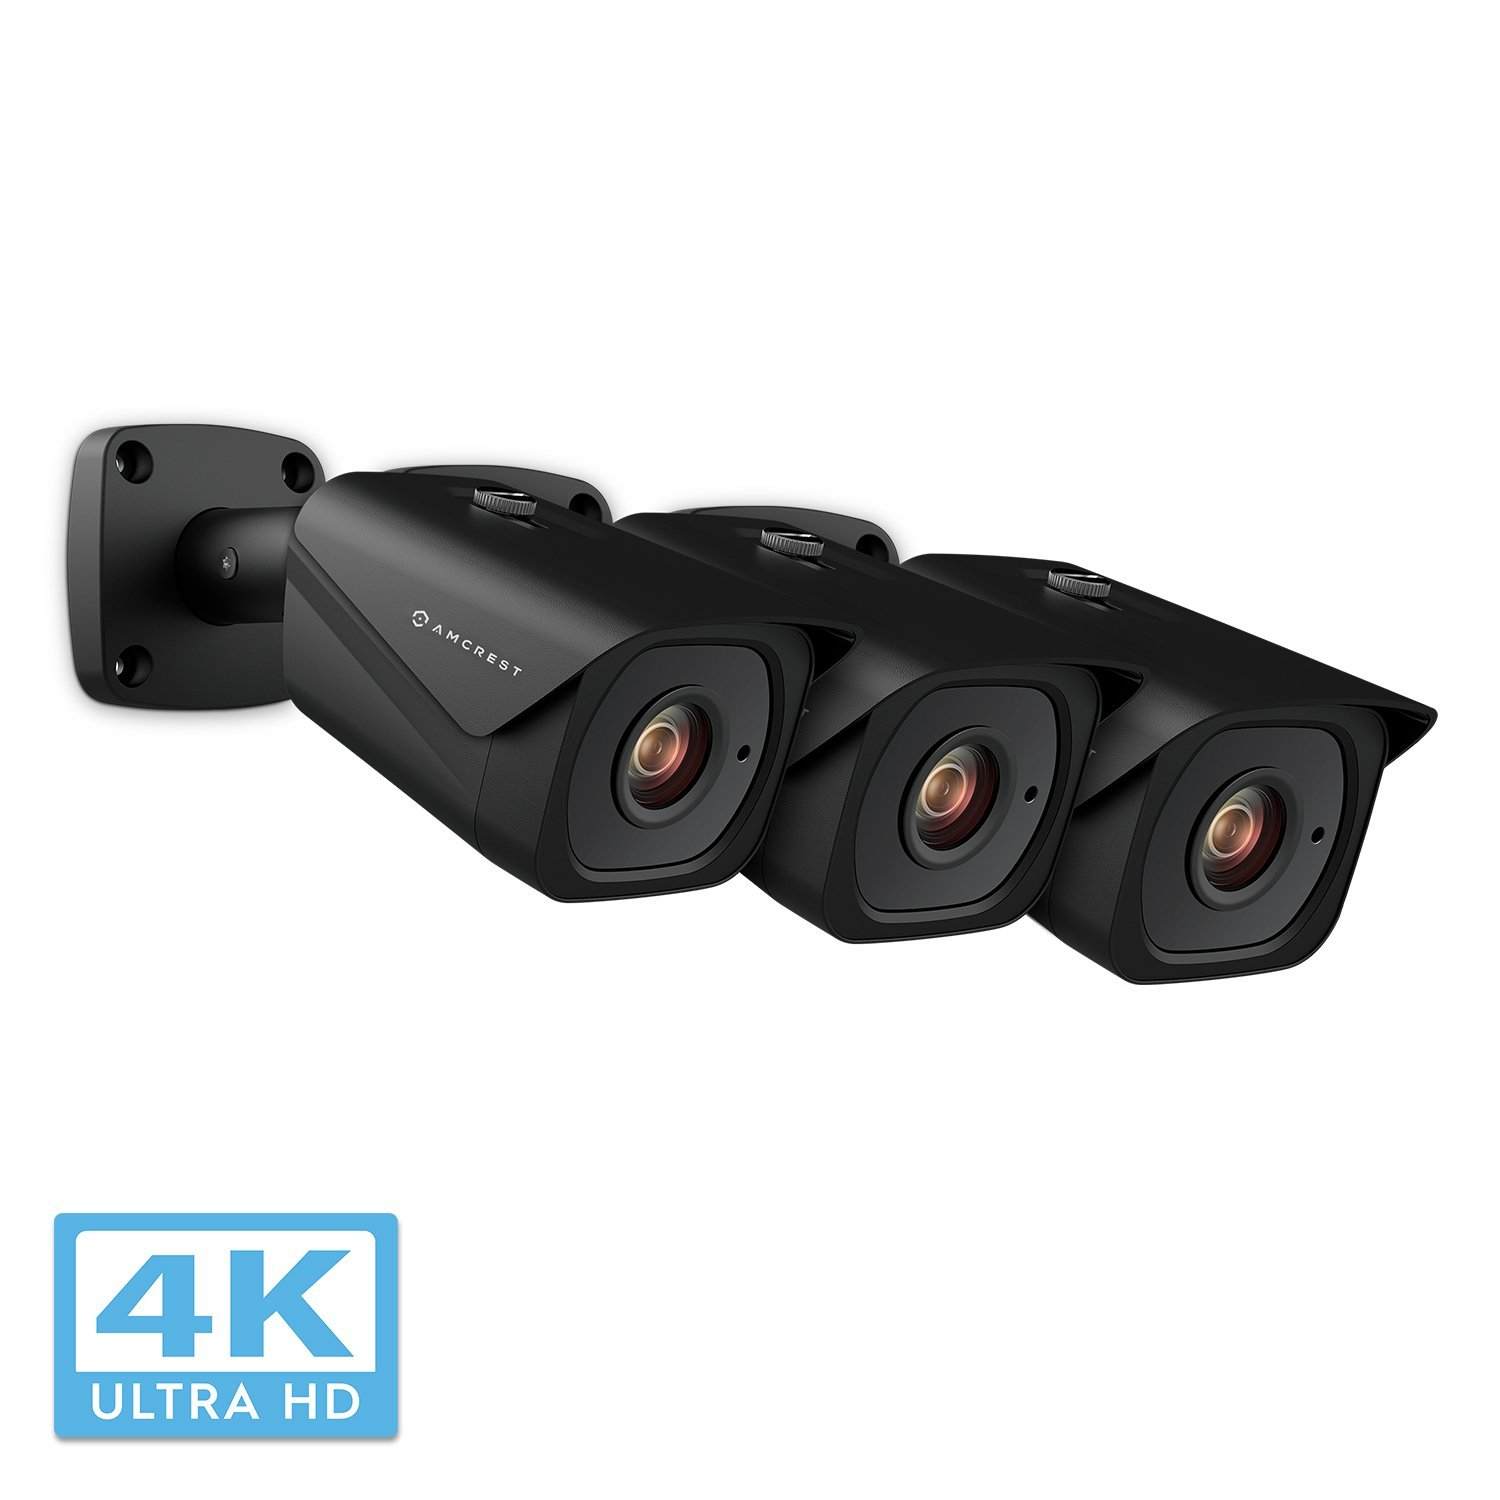 3-Pack Amcrest UltraHD 4K (8MP) Bullet POE IP Camera, 3840x2160, 131ft NightVision, 2.8mm Lens, IP67 Weatherproof, MicroSD Recording, Black (IP8M-2496EB)